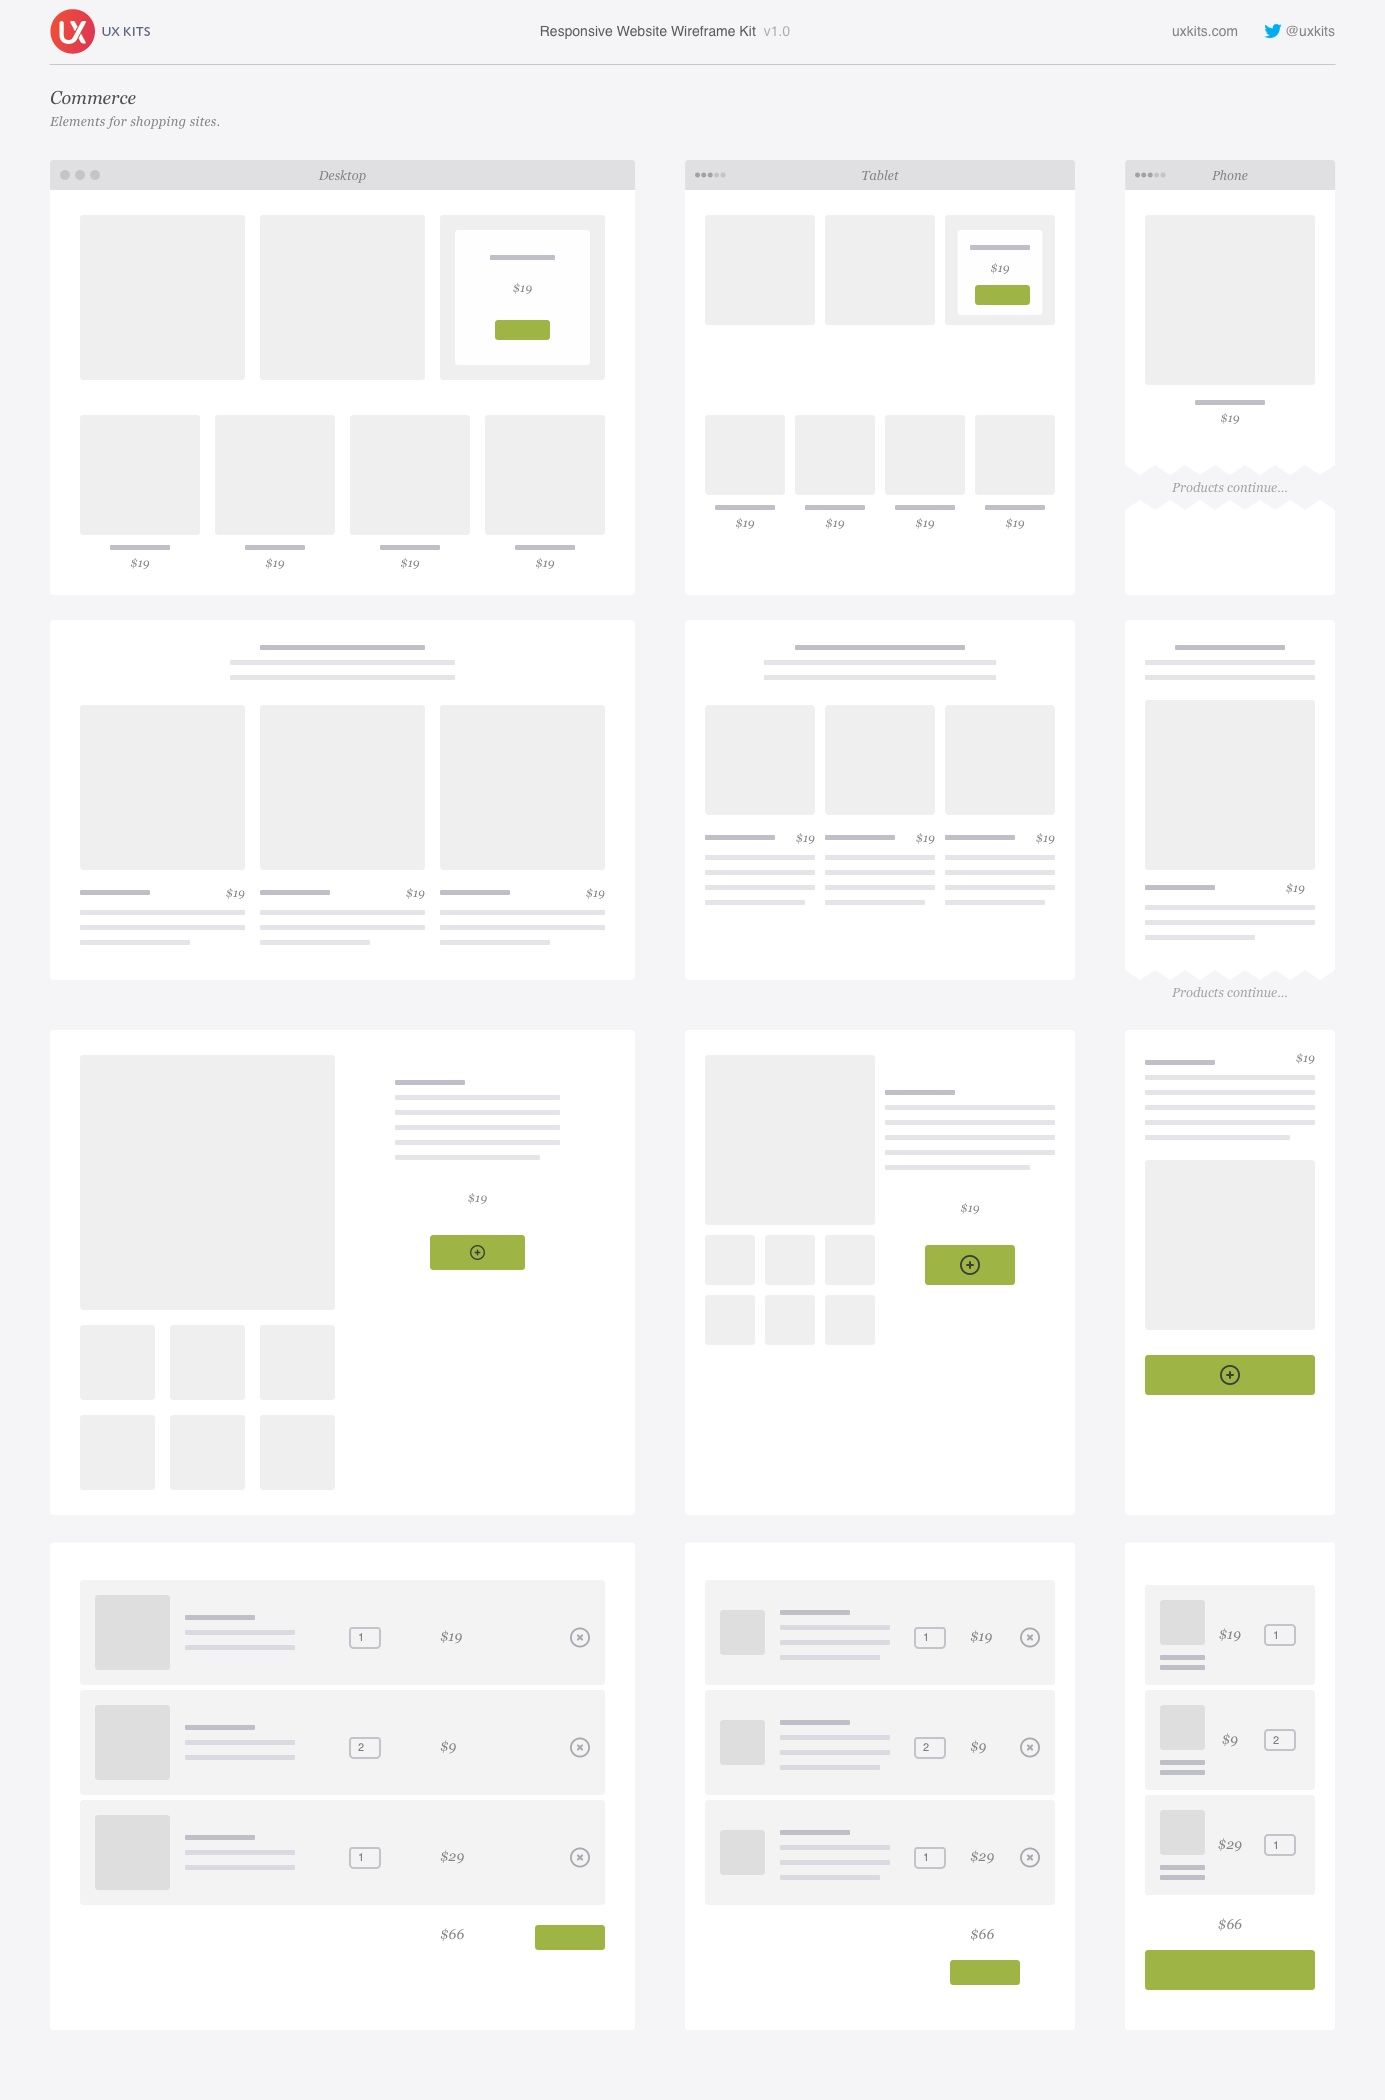 Responsive Website Wireframe Kit – UX Kits http://uxkits.com/products/responsive-website-wireframe-kit